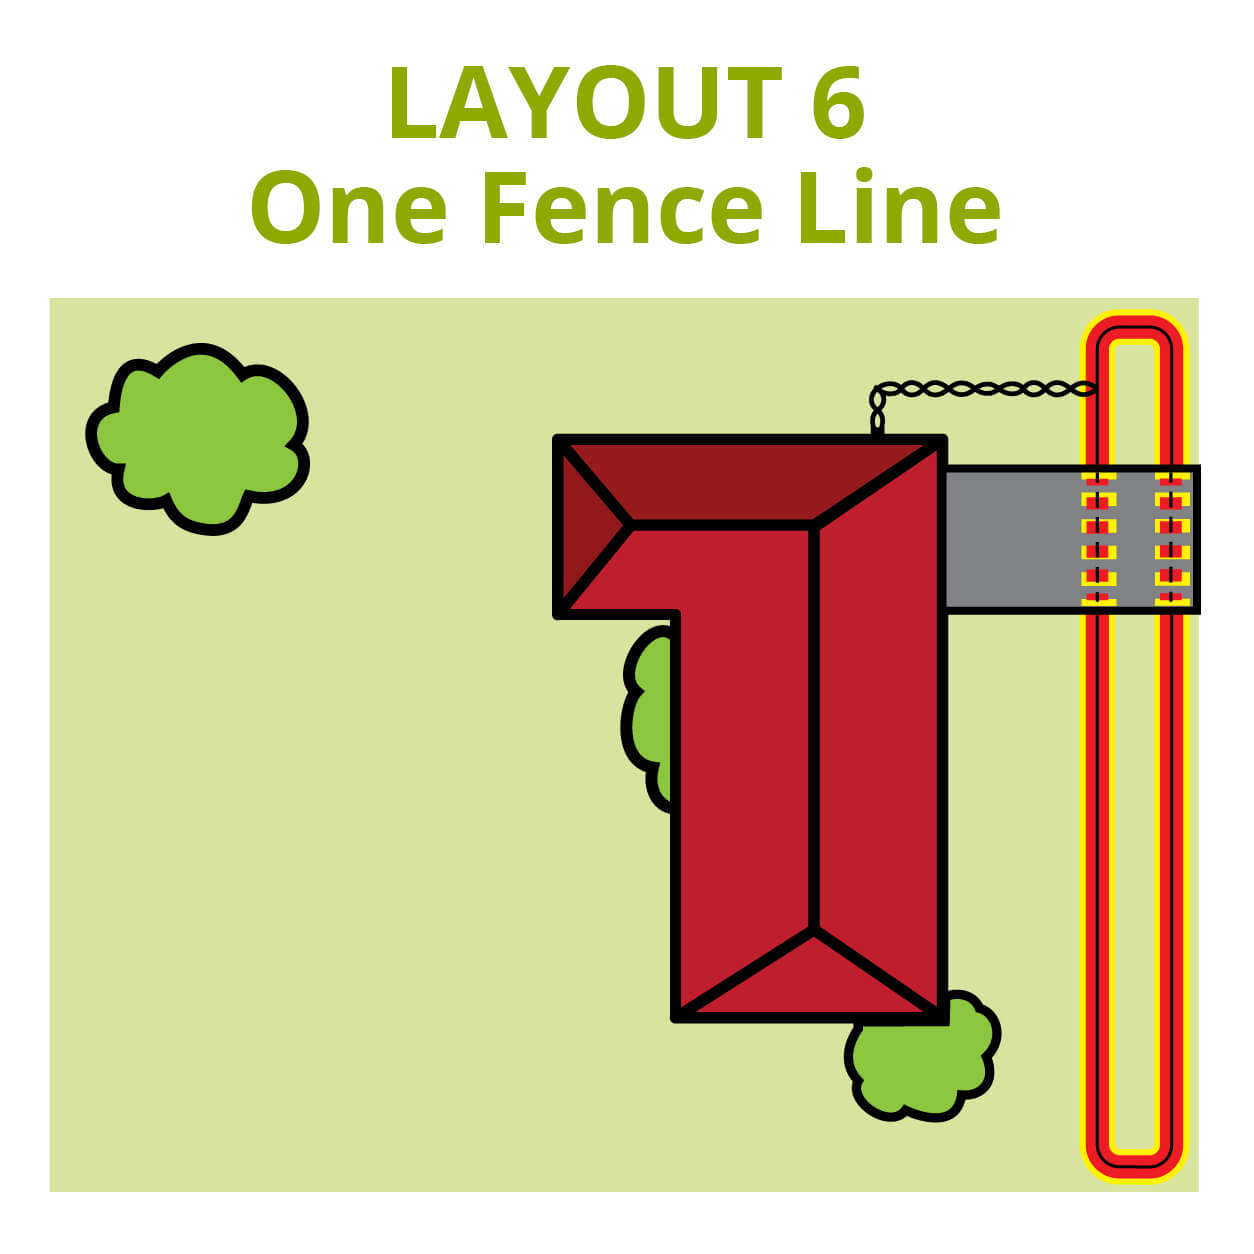 Dog Fence Front Yard Layout